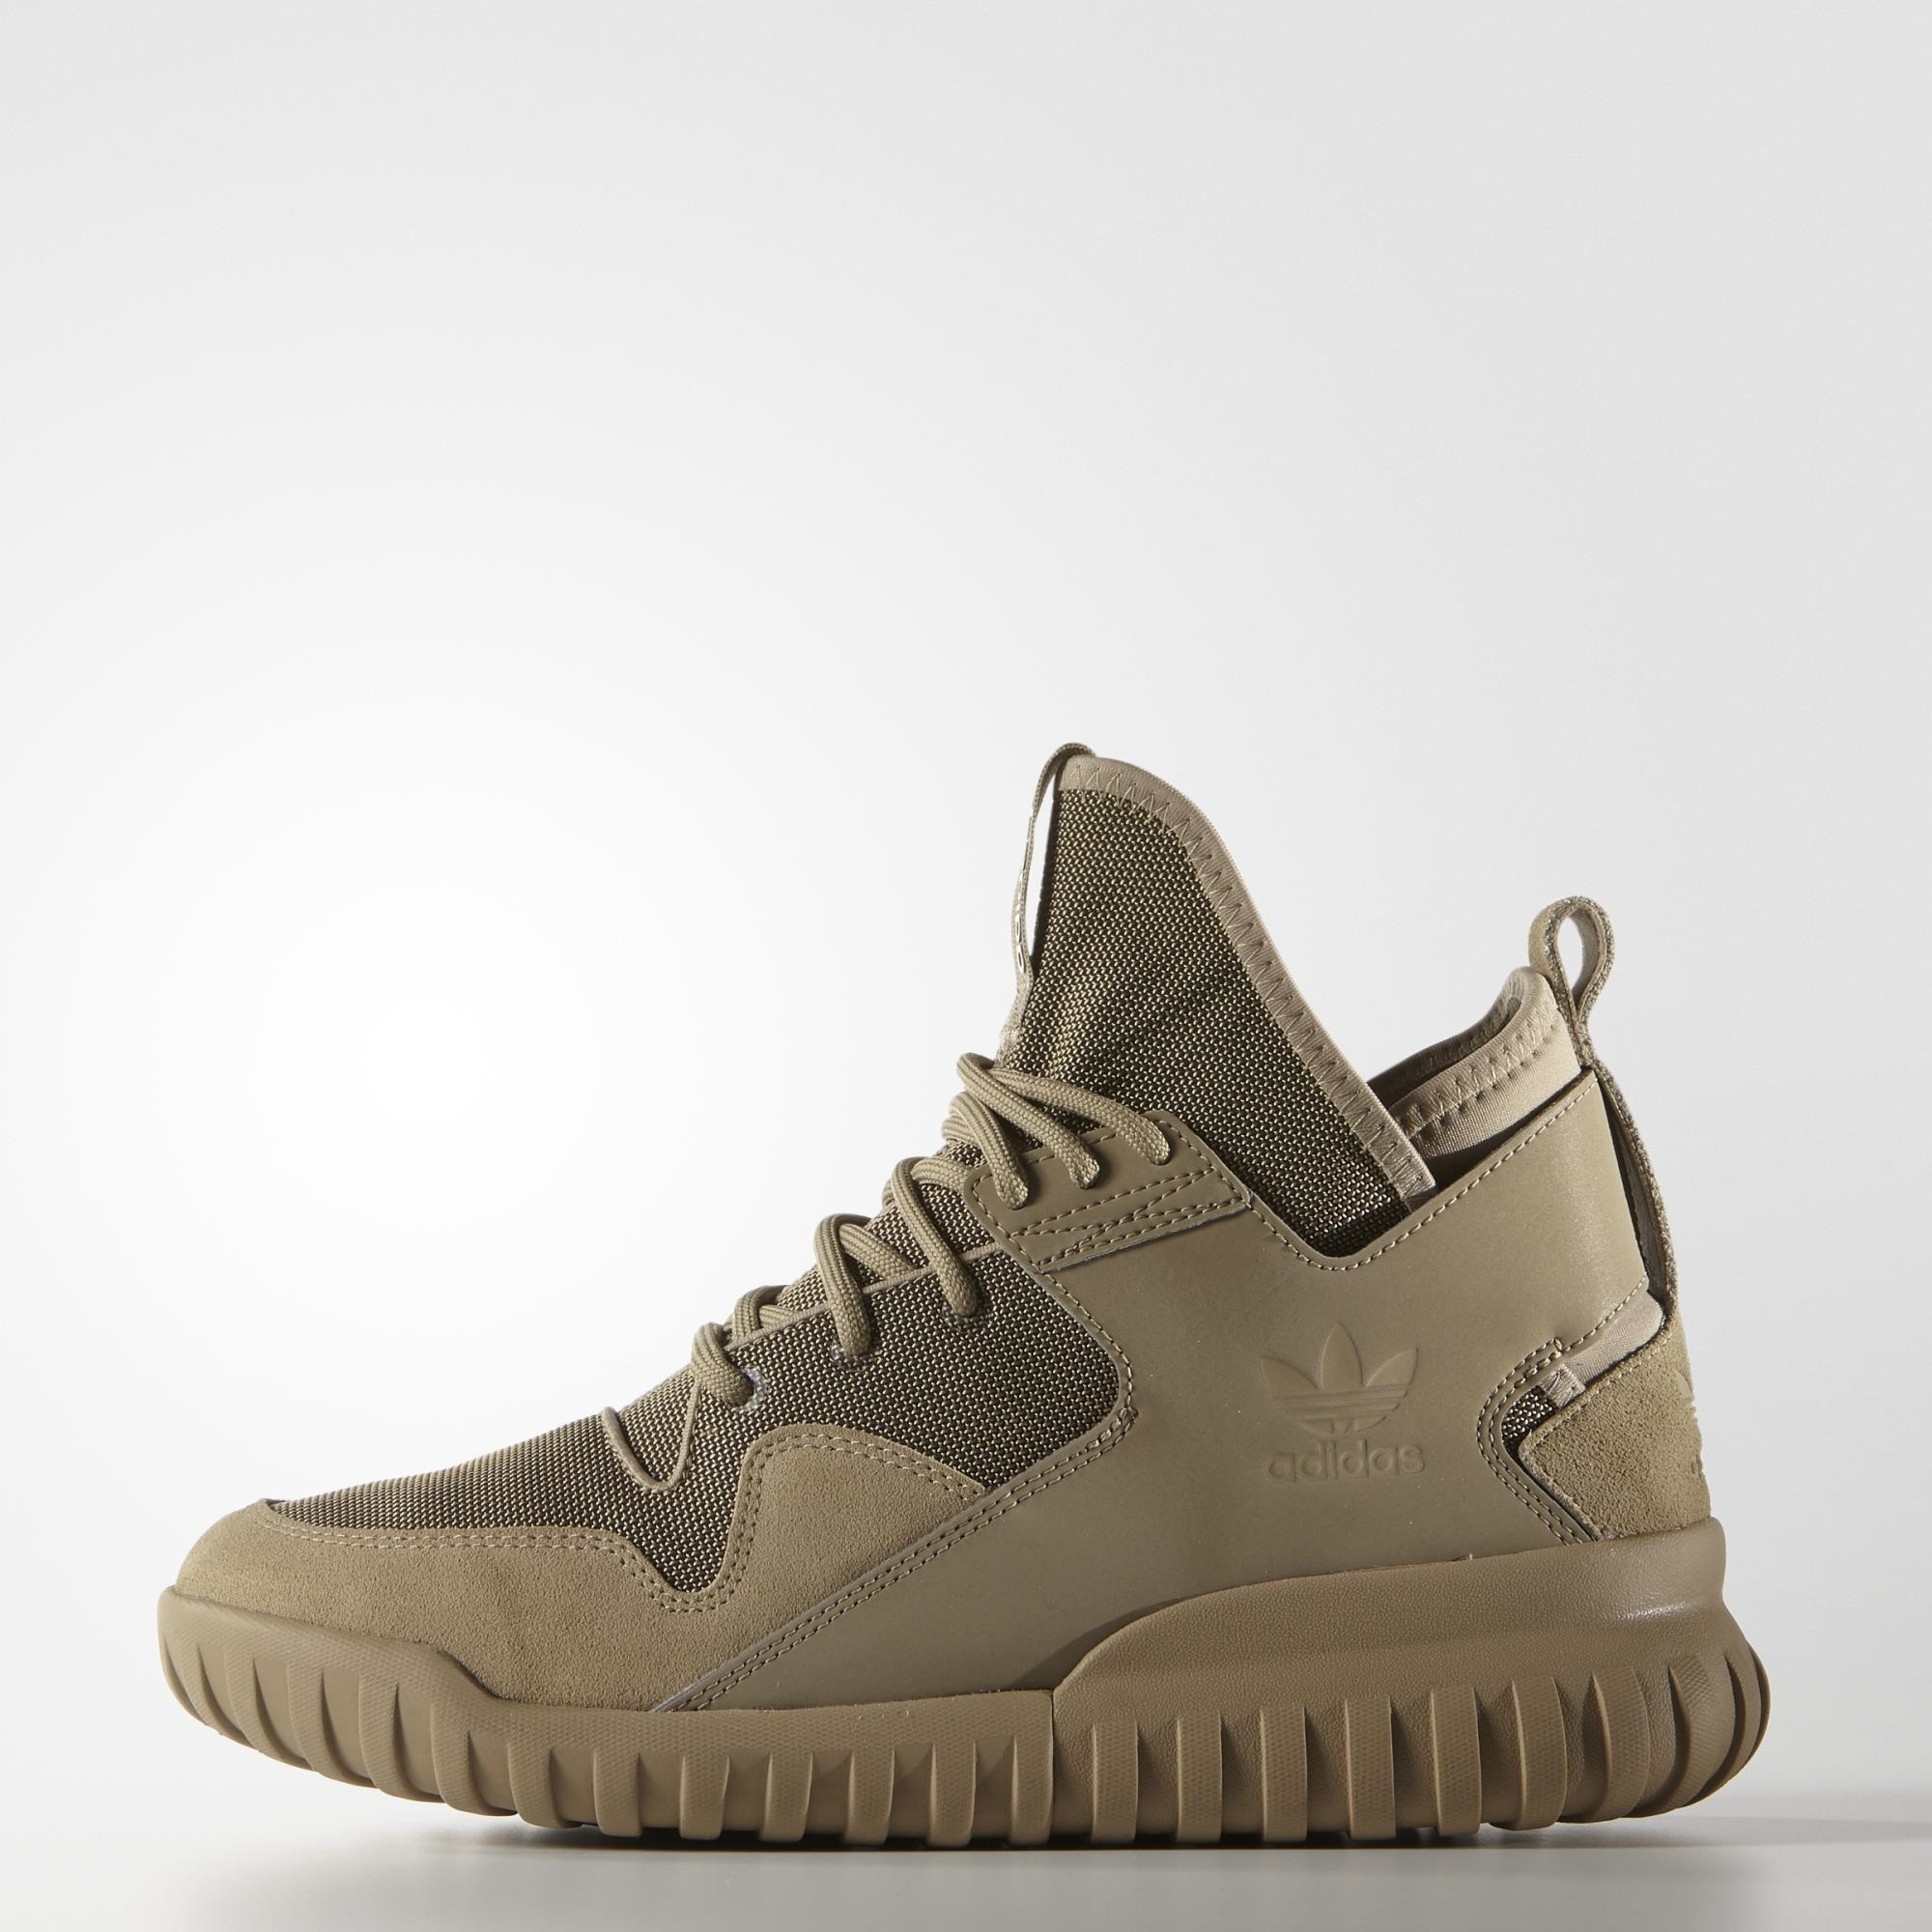 Adidas Tubular X Hemp For Sale